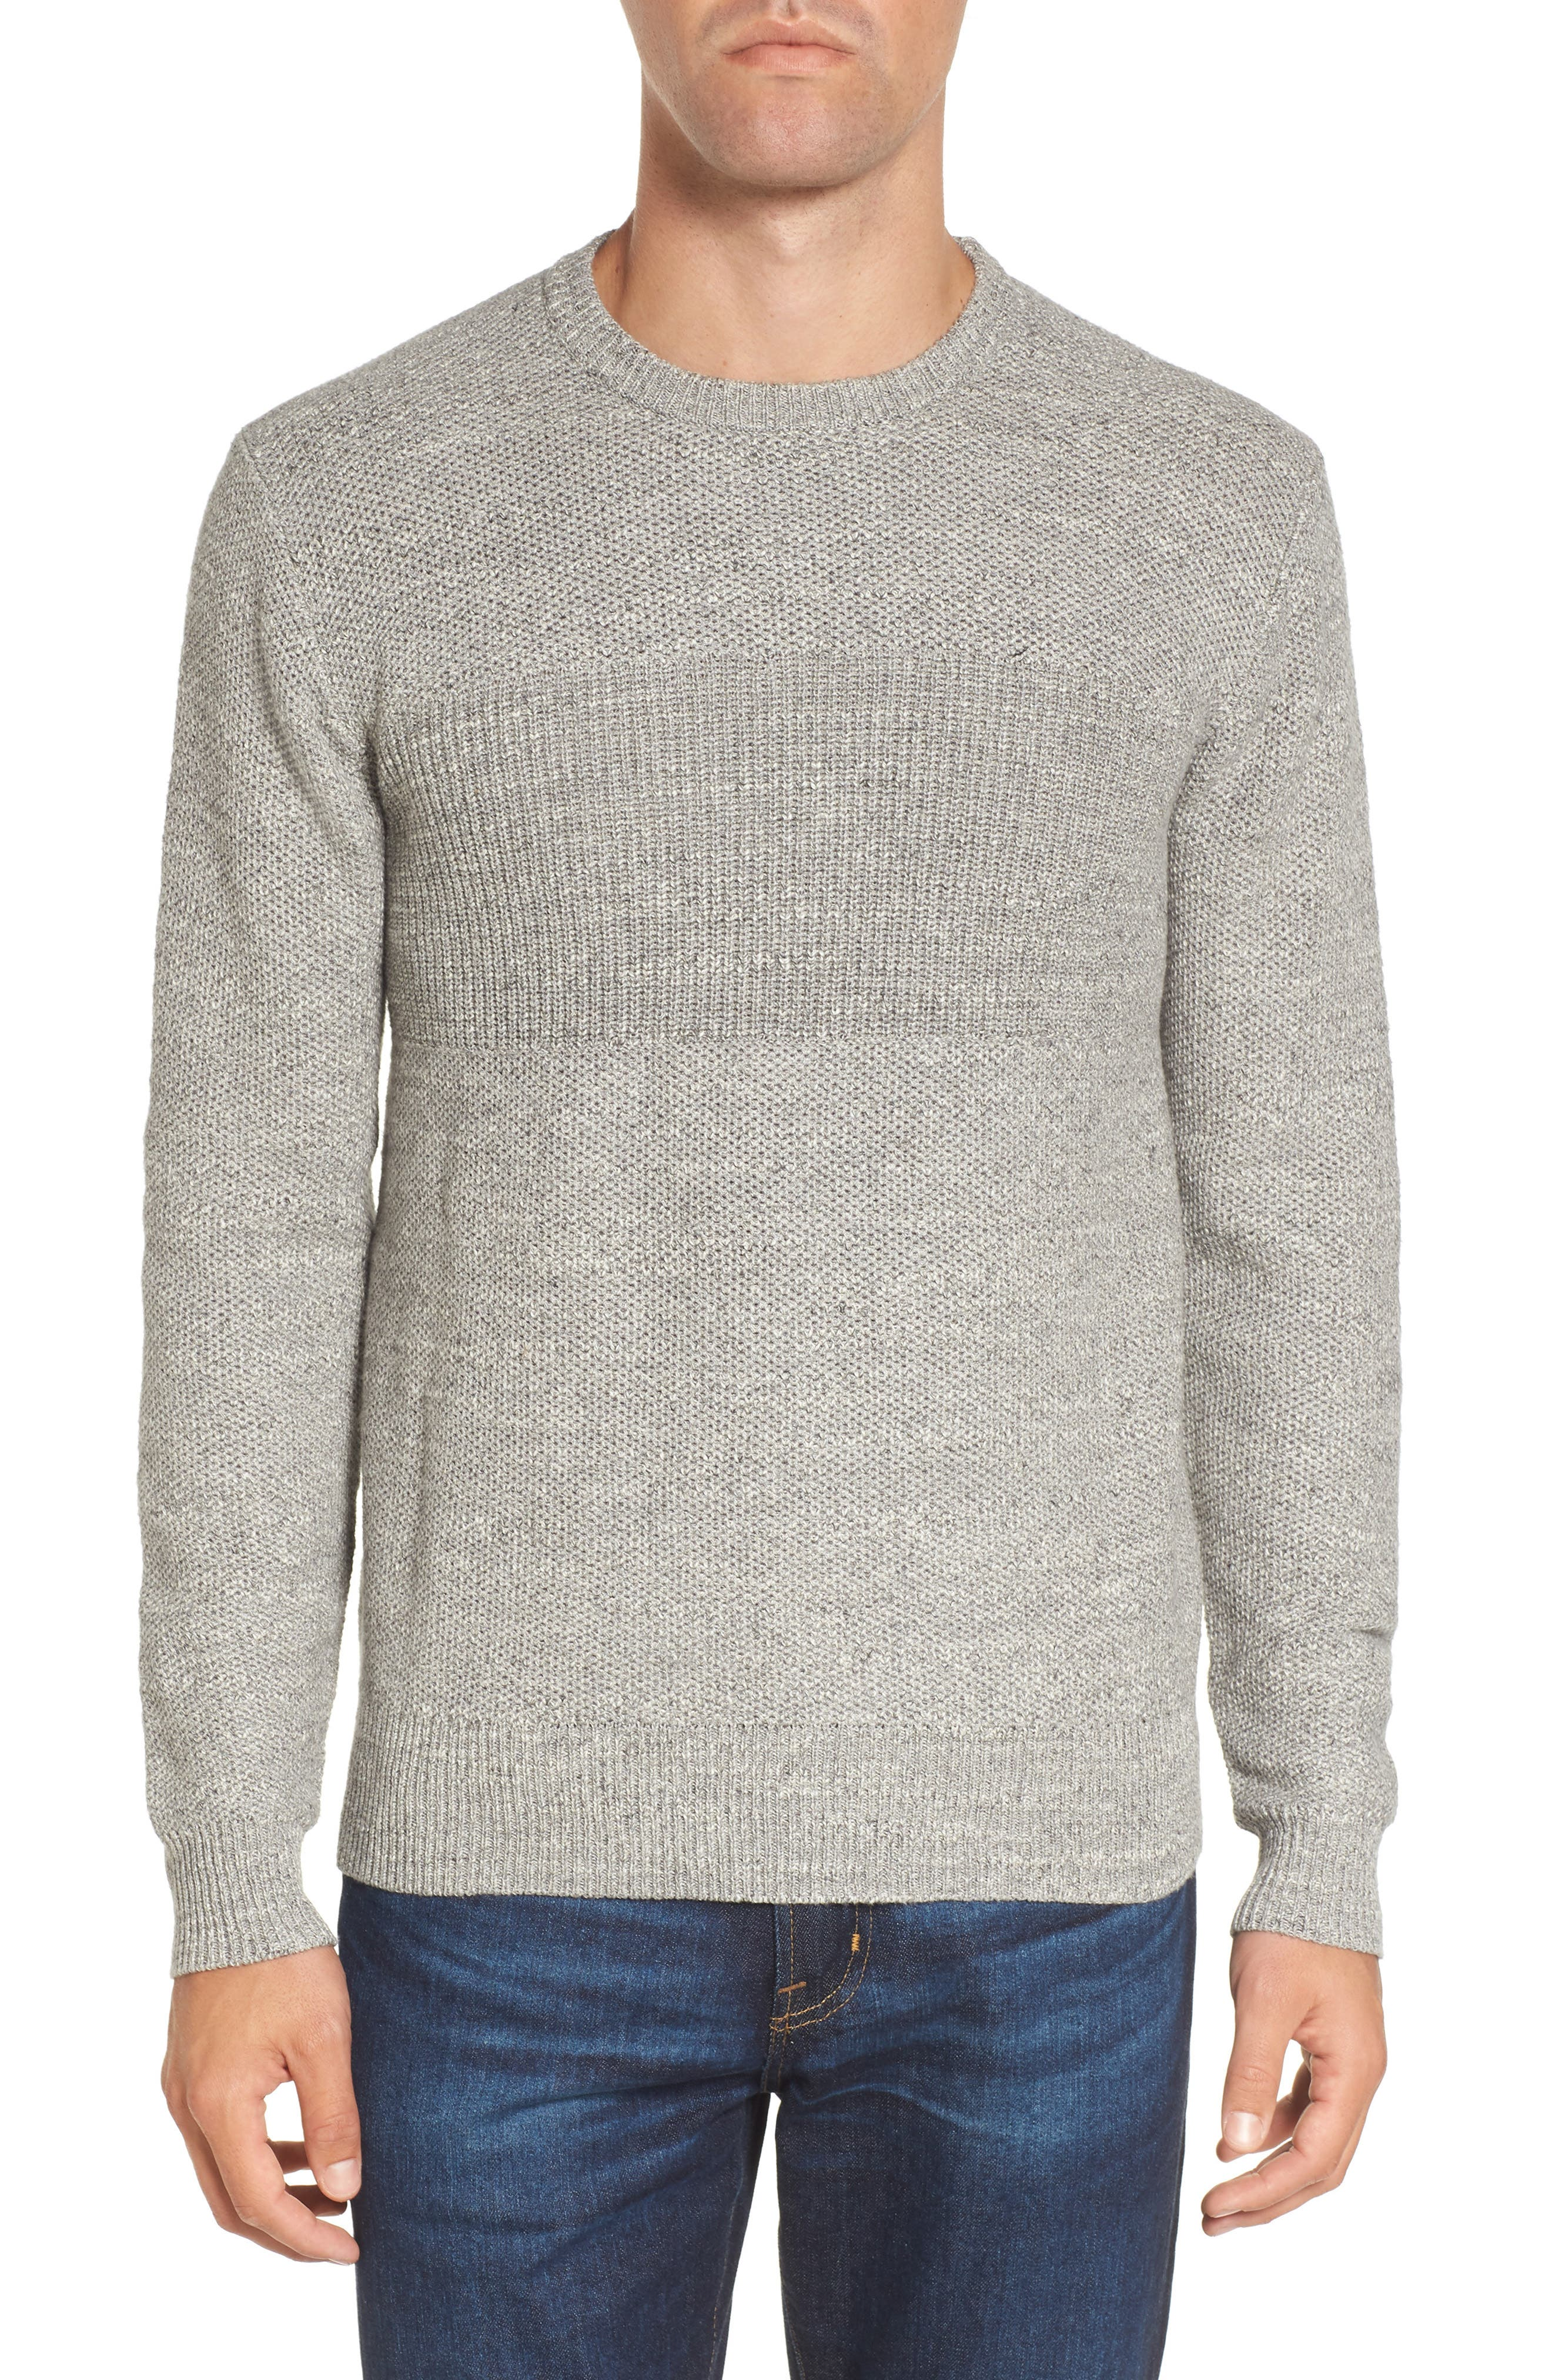 Ardsley Textured Sweater,                             Main thumbnail 1, color,                             052